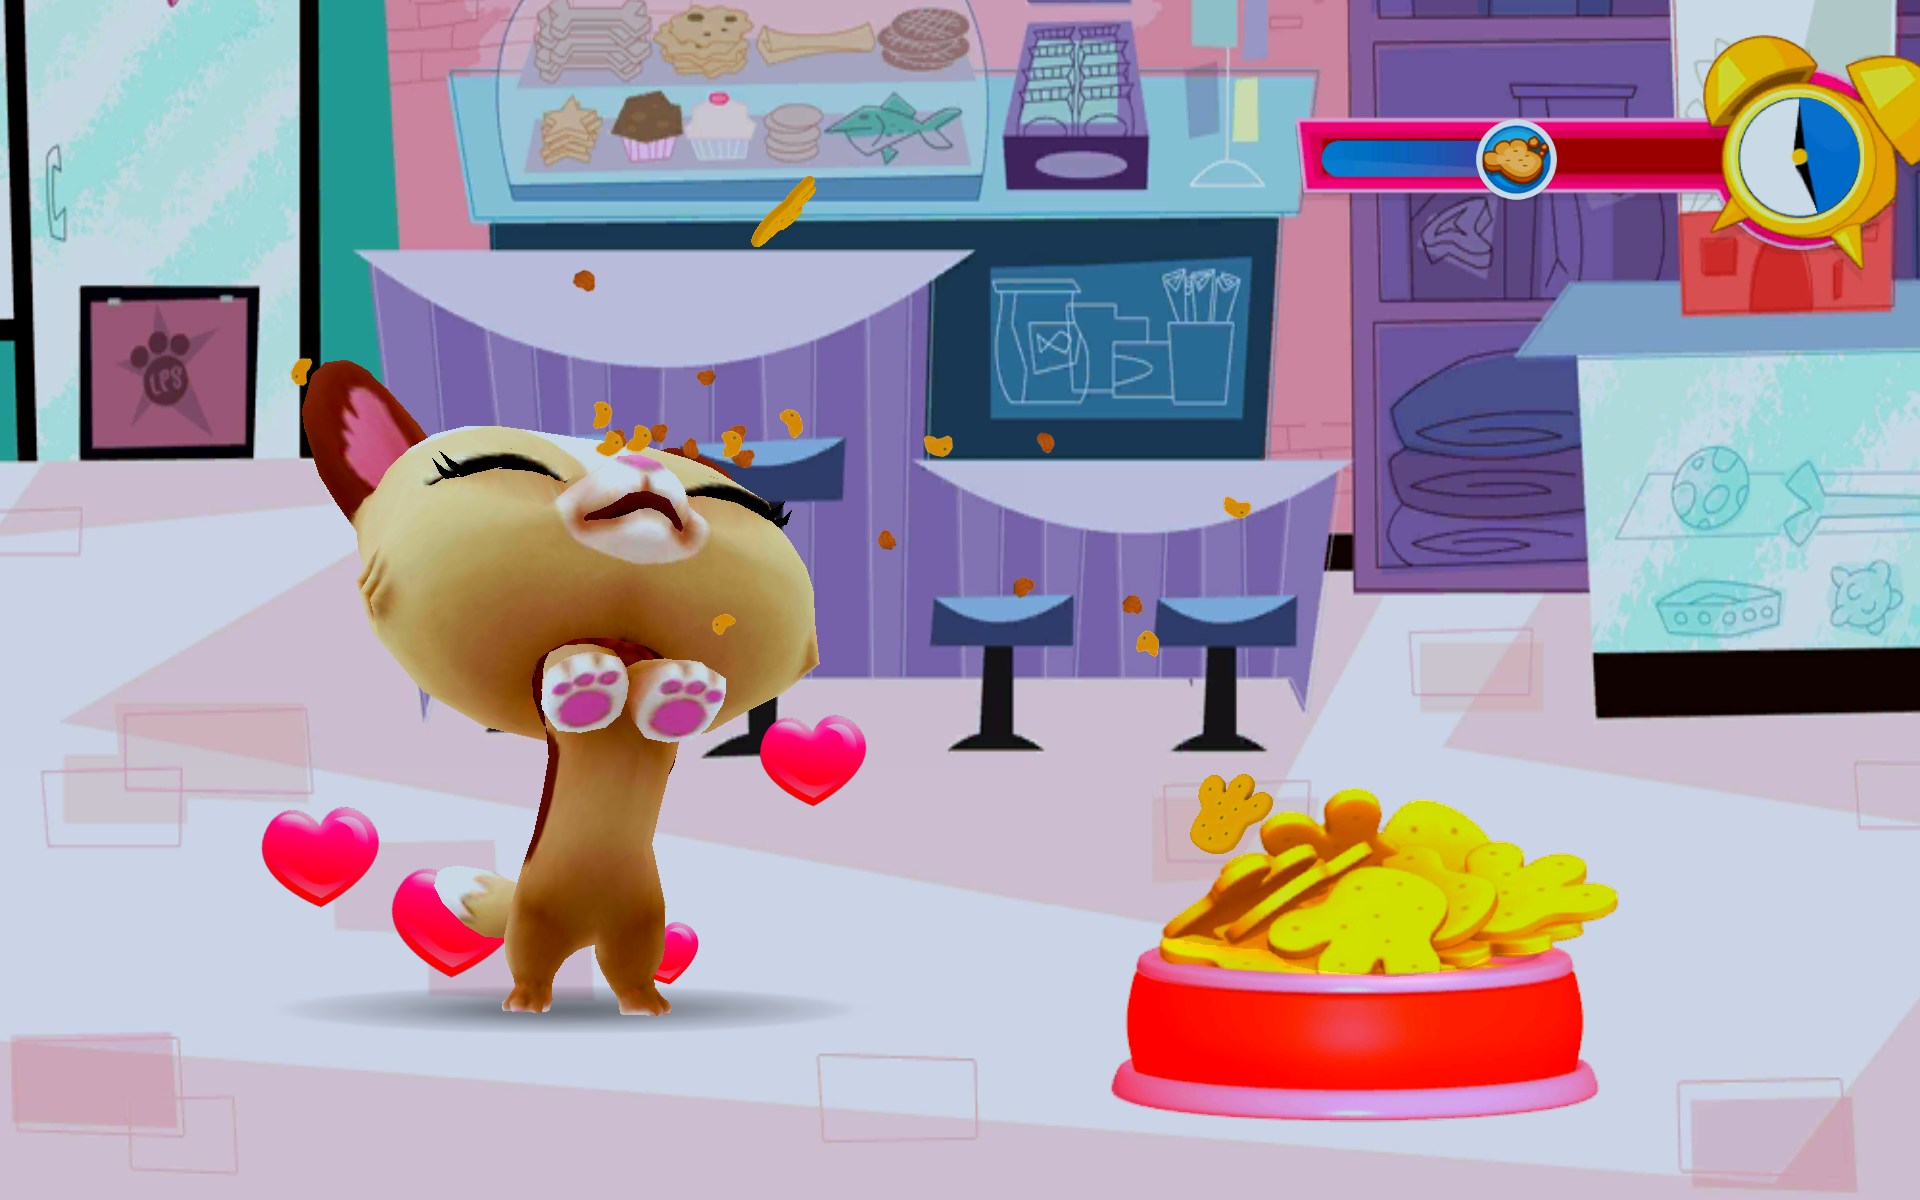 There are games related to my littlest pet shop adventure, such as